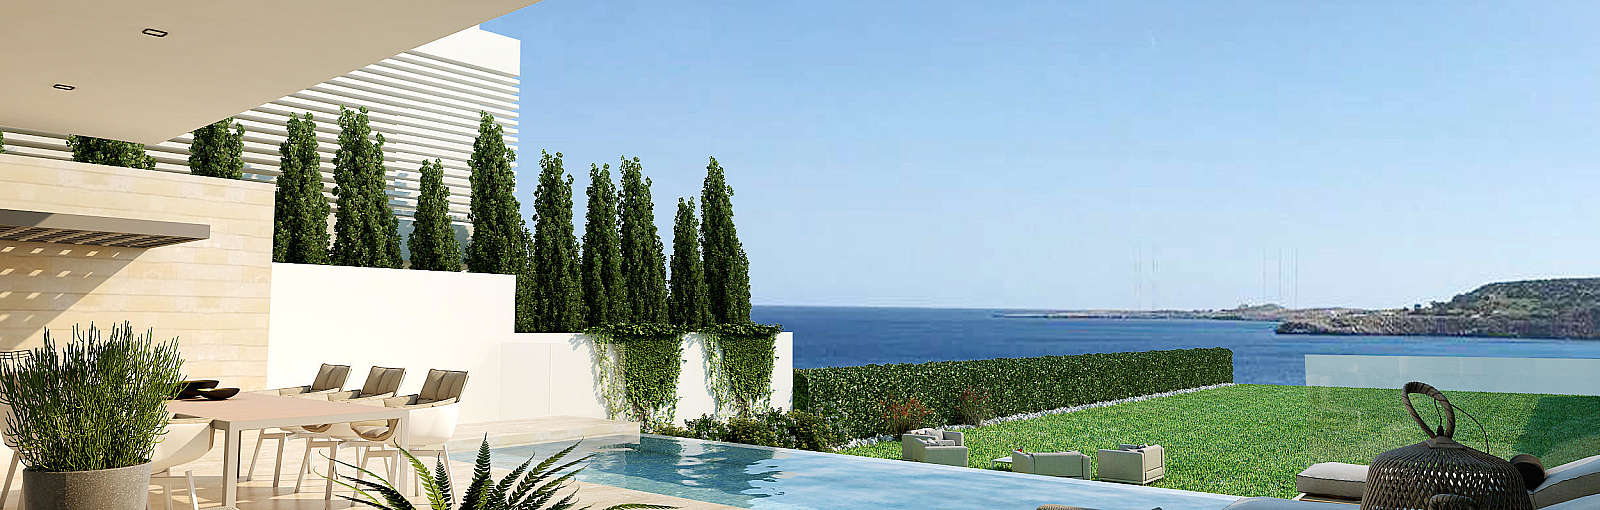 "<span class=""numbers"">3</span> Bed­room Detached Lux­u­ry Sea Front Villa/​Cape&nbsp;Greco"